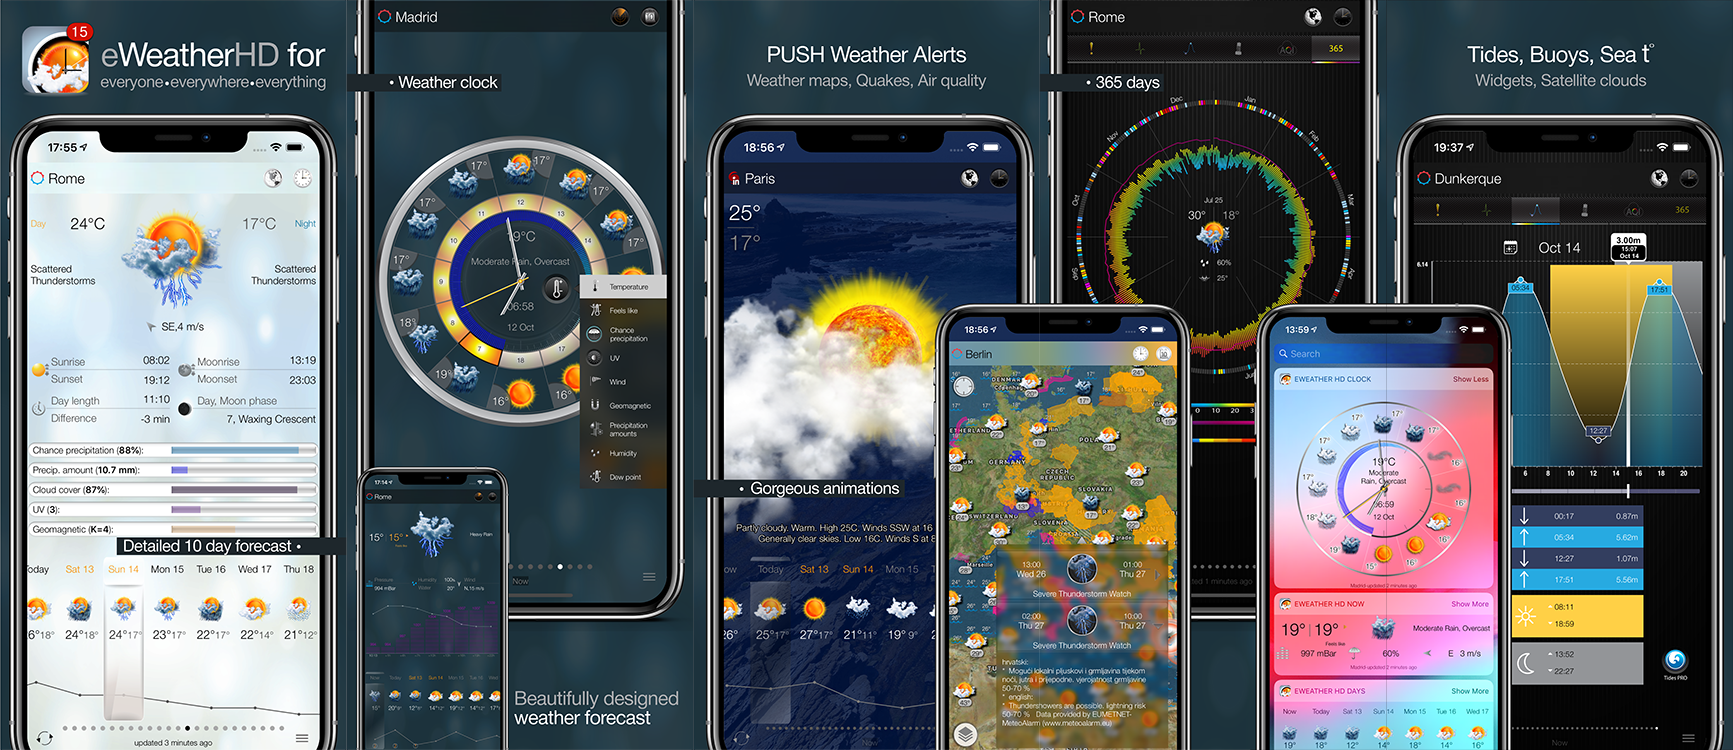 eWeather HD 3.9 for  Apple Watch- Severe weather alerts PUSH notifications, weather forecast, wind, rain, snow, temperature of air, humidity, dew-point, uv-index, geomagnetic activity and more